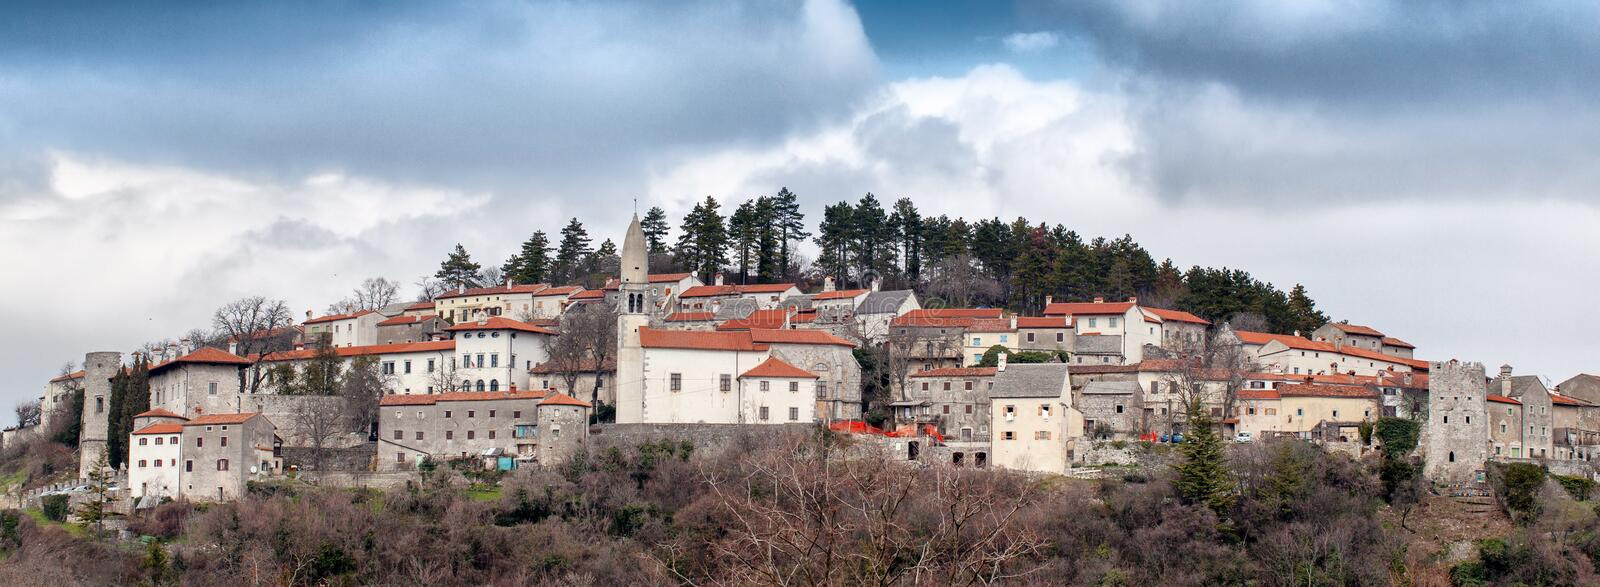 Stanjel, Slovenia. Stanjel, beautiful small village in Slovenia royalty free stock images